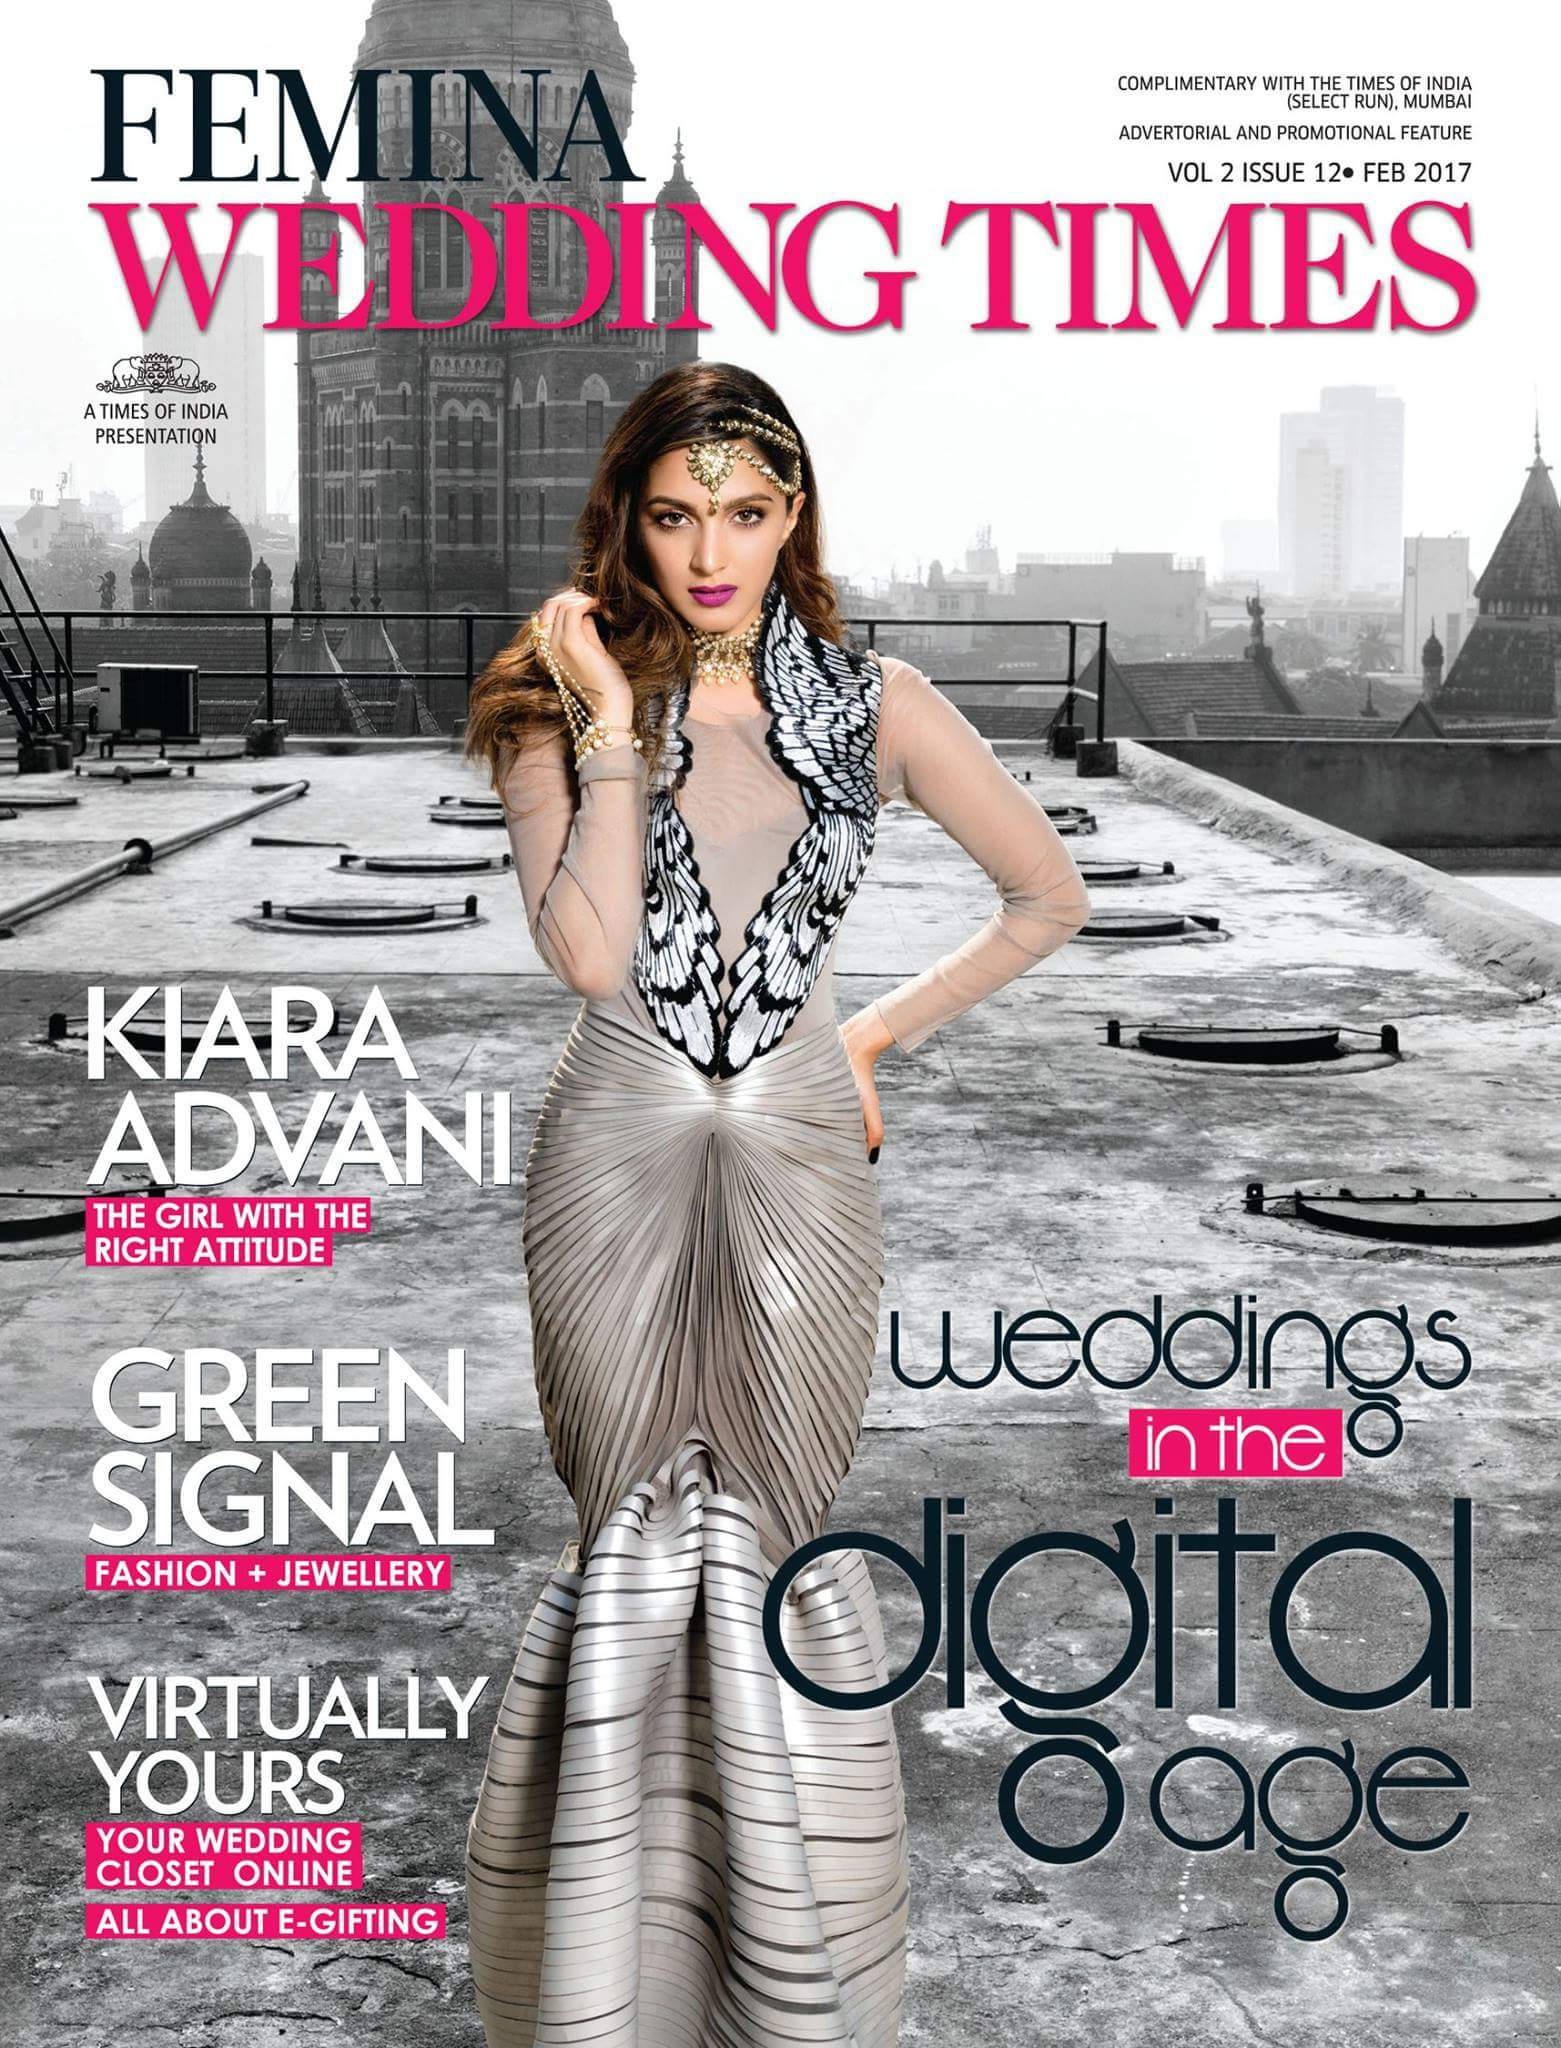 Femina Wedding Times Cover | Kiara advani